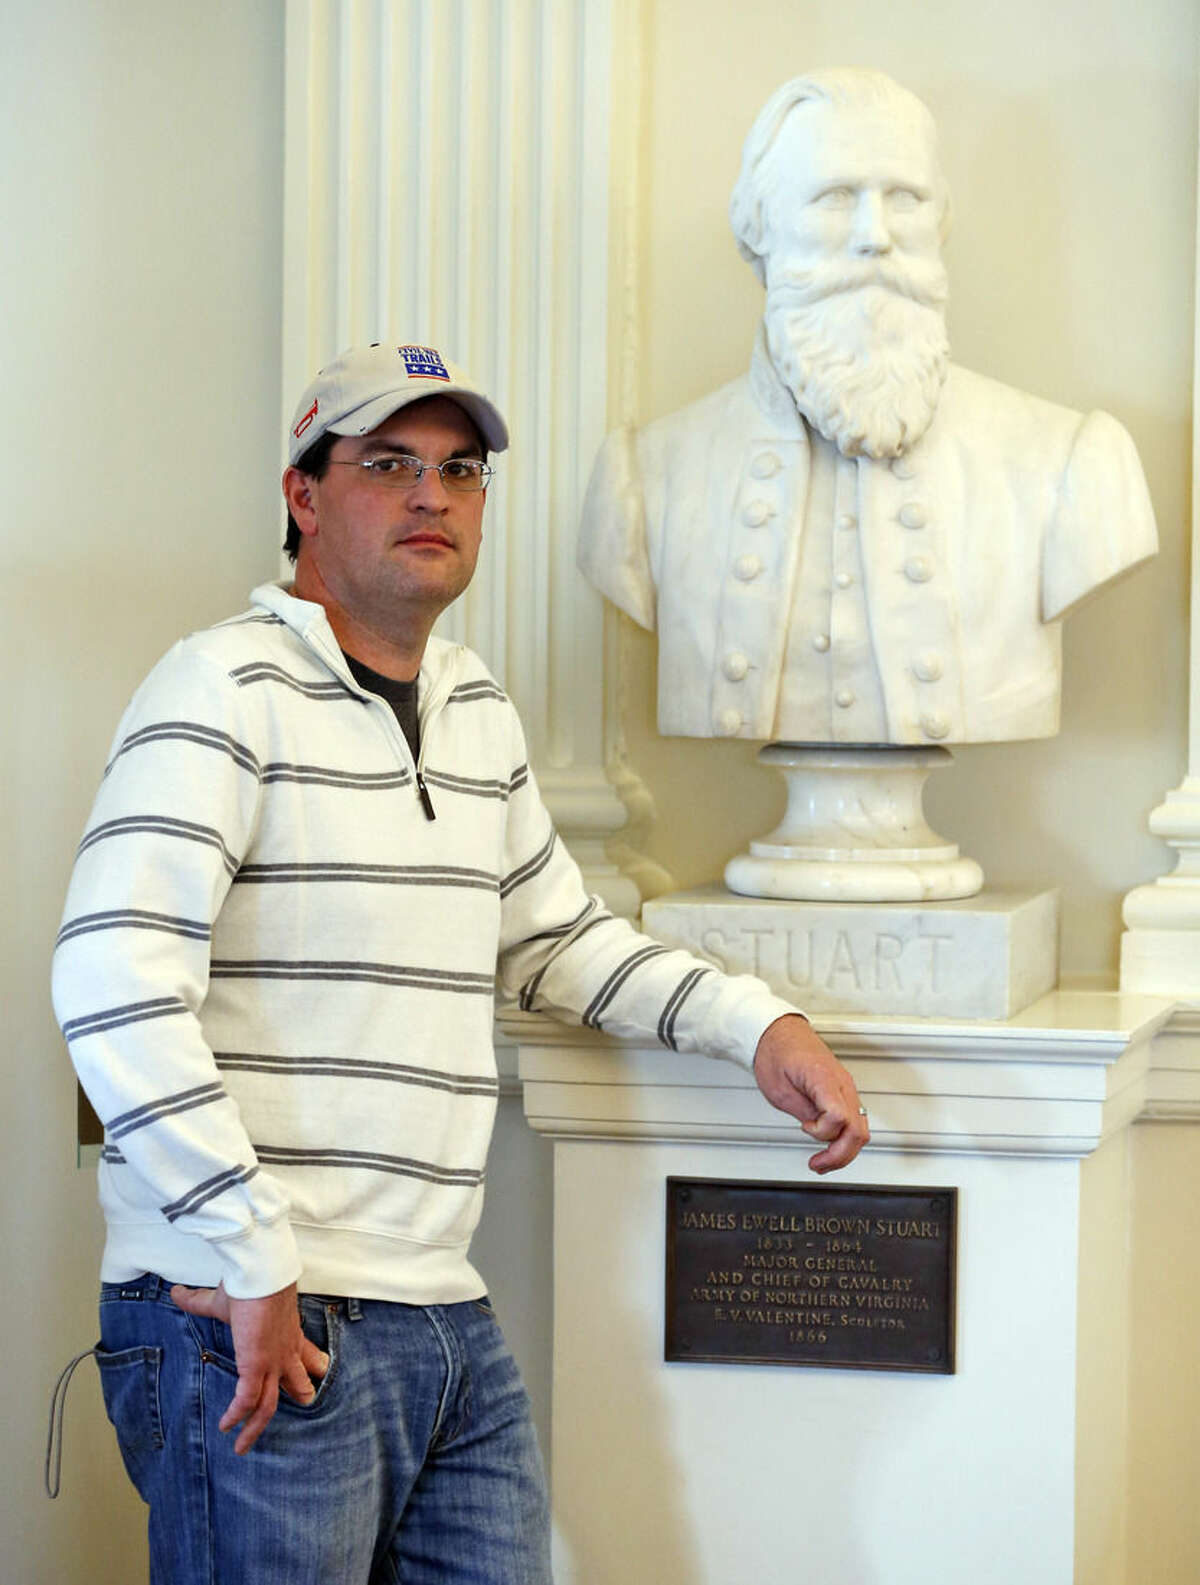 FOR RELEASE SATURDAY, APRIL 4, 2015, AT 3:00 A.M. EDT- Civil War enthusiast Rob Orrison poses next to a bust of Confederate General J.E.B. Stuart, during a tour of the Old House chambers at the Capitol in Richmond, Va., Thursday, April 2, 2015. Orrison has been to 60-plus battlefields in four years during the Civil War's 150th anniversary which takes as much passion and commitment as getting married or having a child. (AP Photo/Steve Helber)